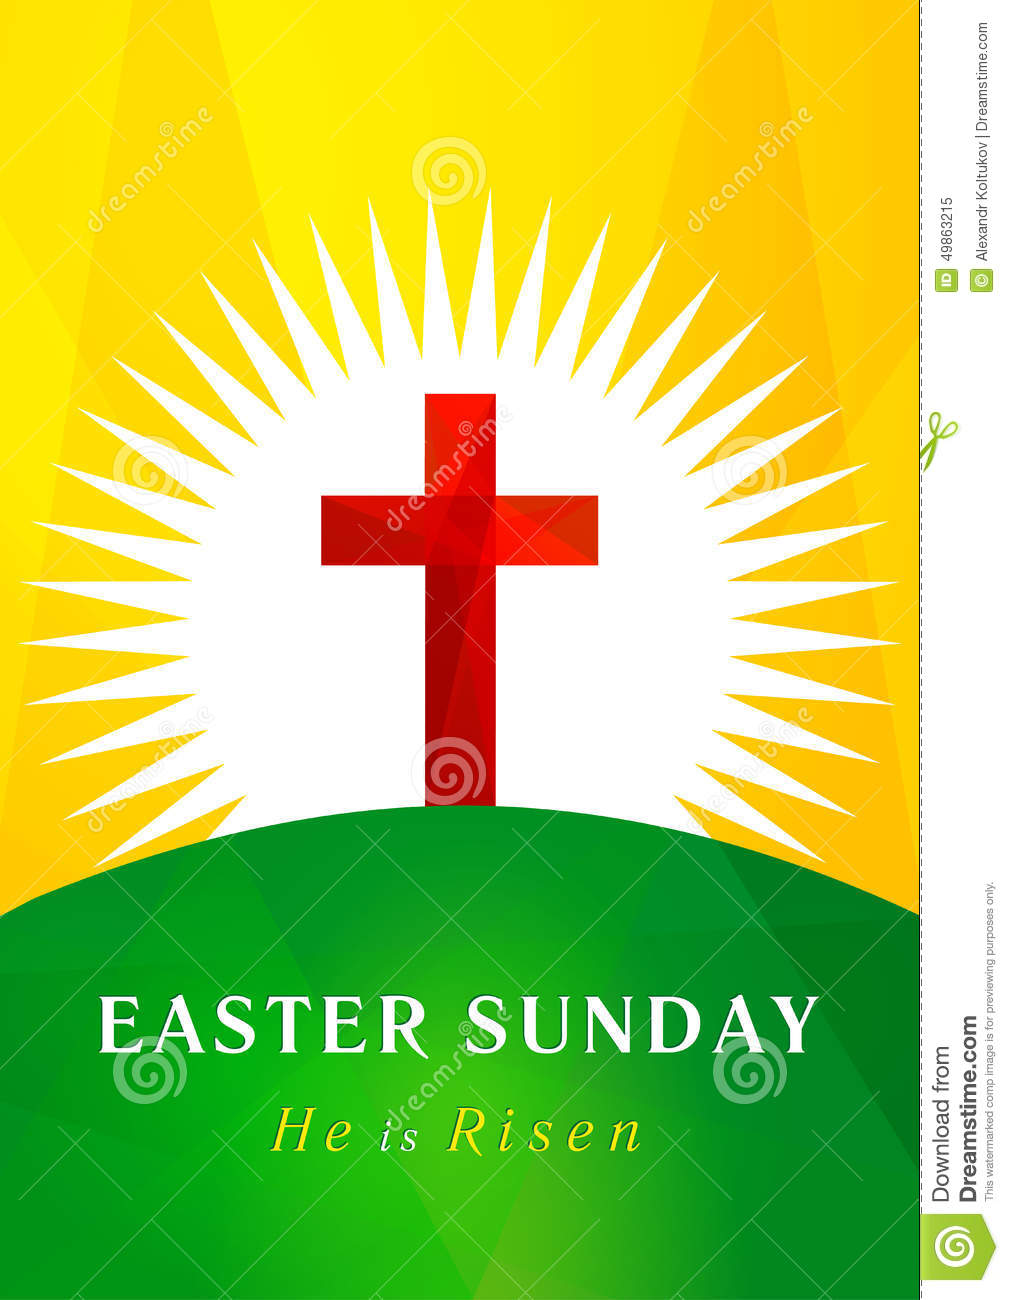 Easter Sunday Calvary Card Stock Vector Illustration Of Hill 49863215